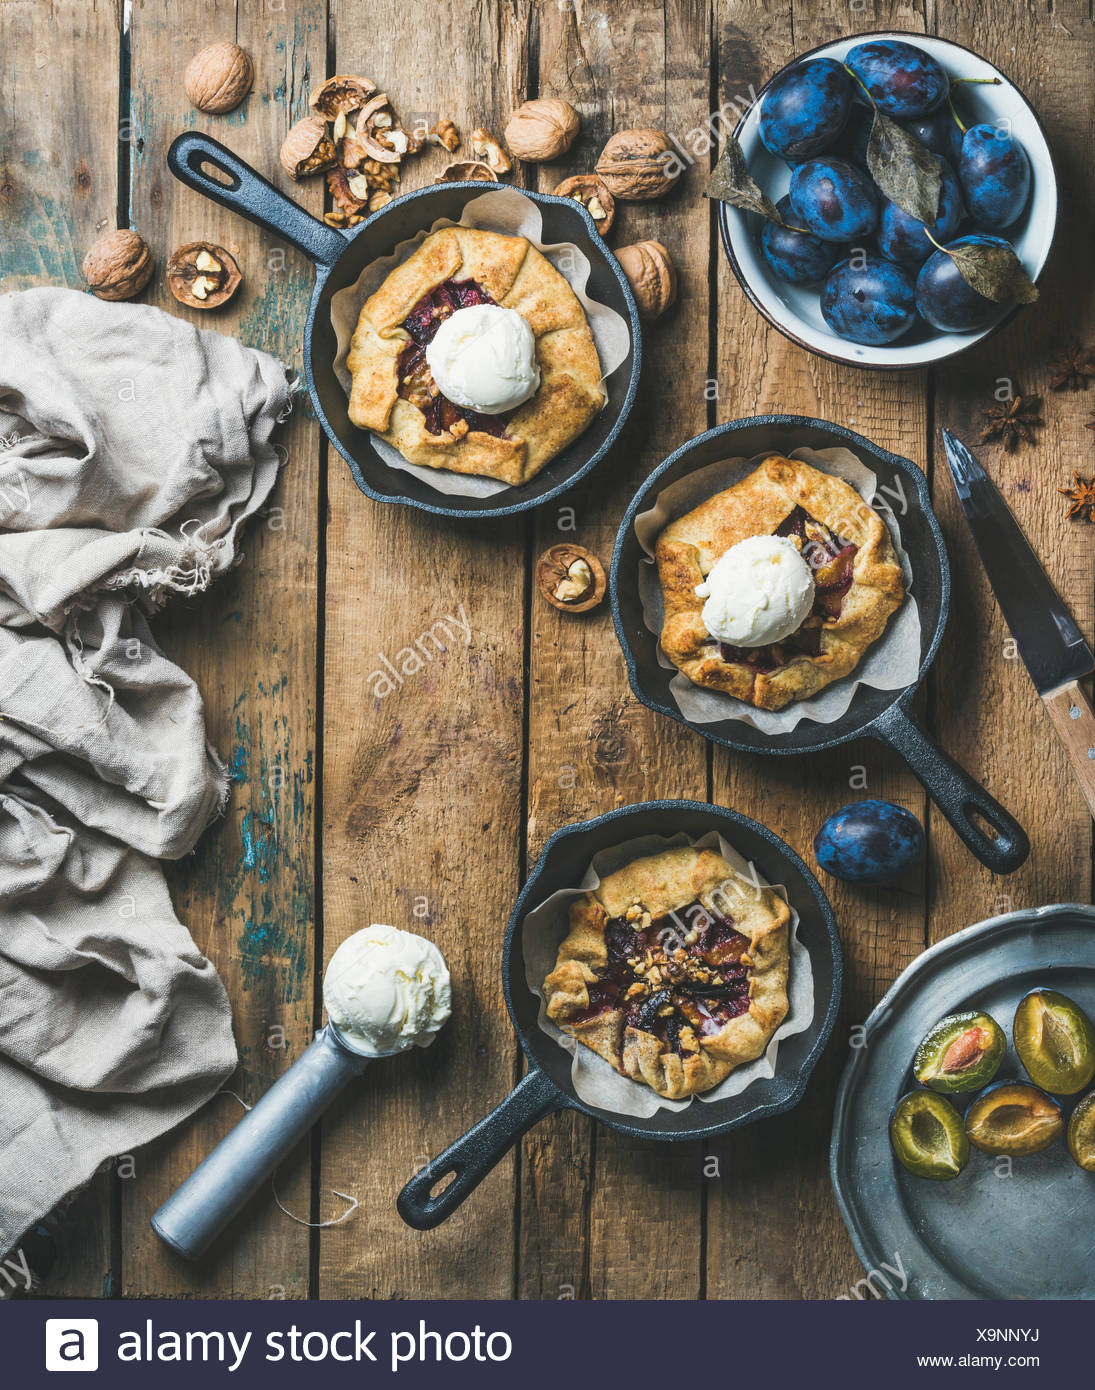 Plum and walnut crostata pie with ice-cream scoops in individual cast iron pans over rustic wooden table, top view, copy space. Slow food concept - Stock Image